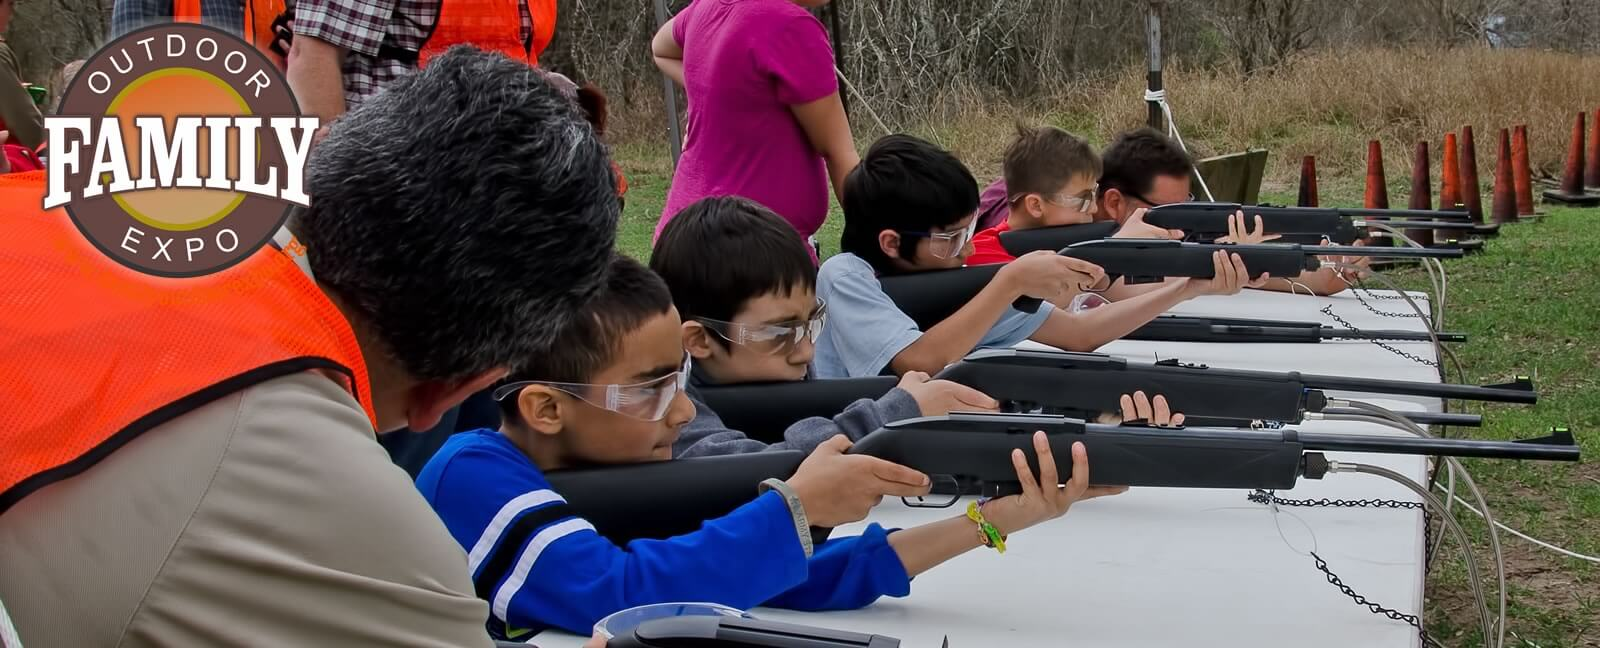 Pellet Shooting at the Family Outdoor Expo